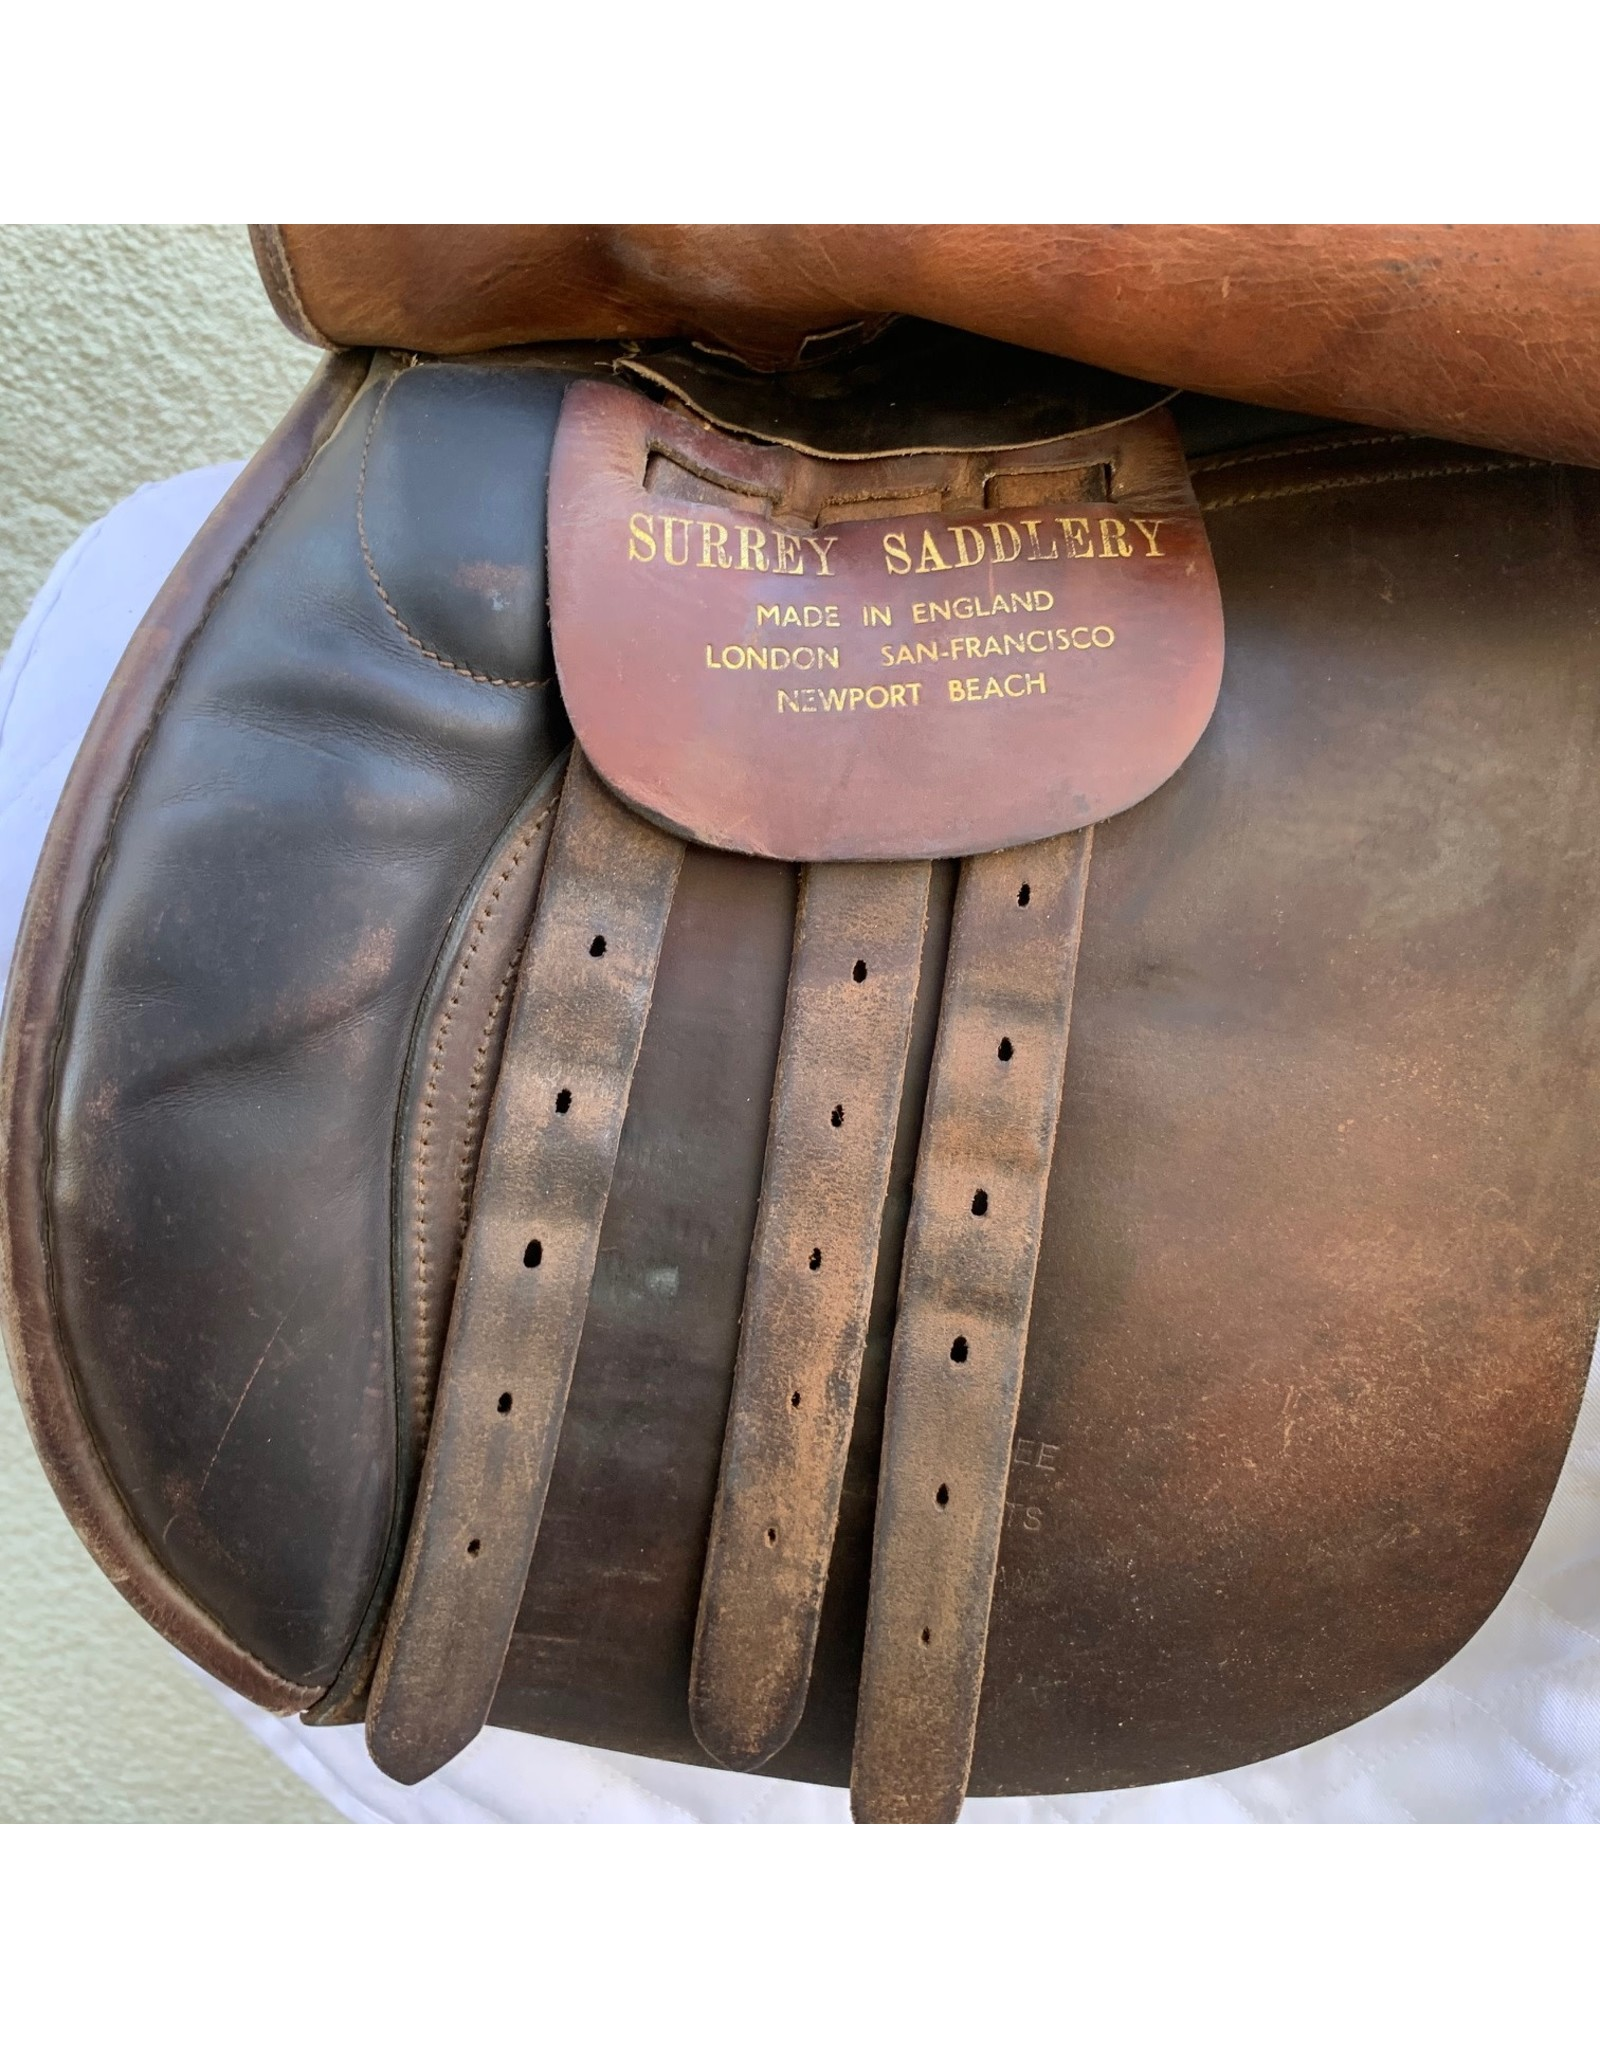 "Surrey Saddlery All purpose Saddle 17"" MW-W with leathers and irons"